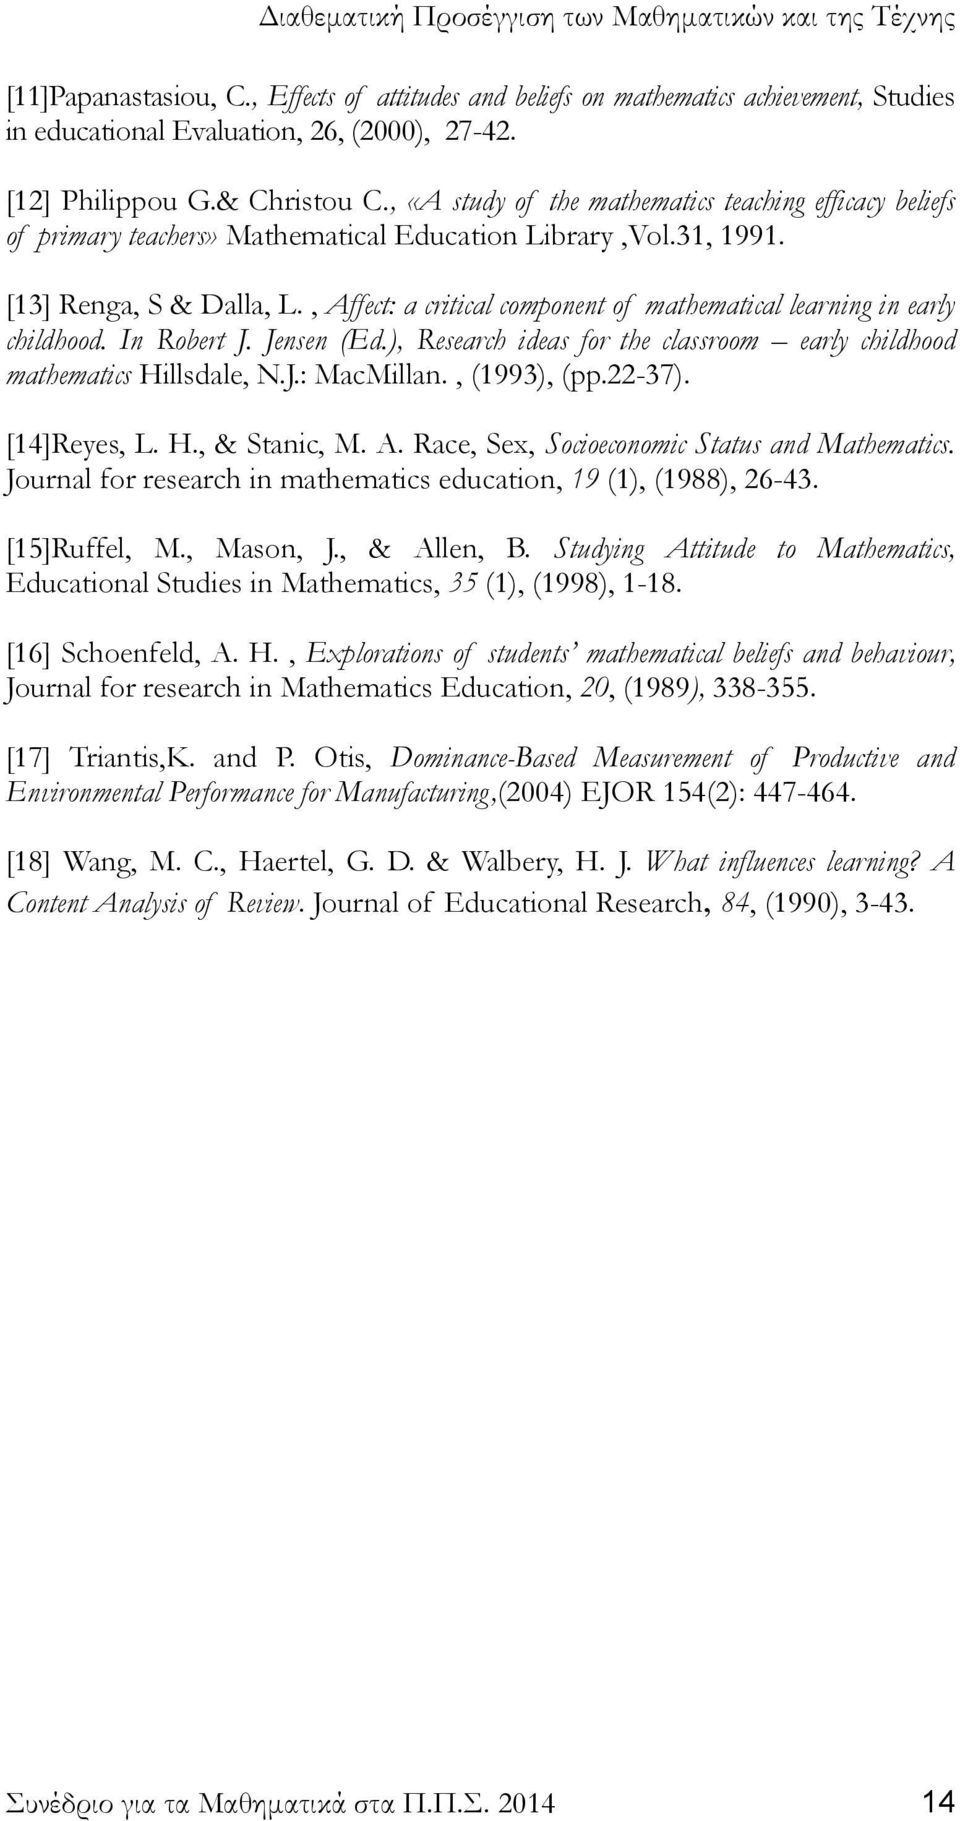 , Affect: a critical component of mathematical learning in early childhood. In Robert J. Jensen (Ed.), Research ideas for the classroom early childhood mathematics Hillsdale, N.J.: MacMillan.